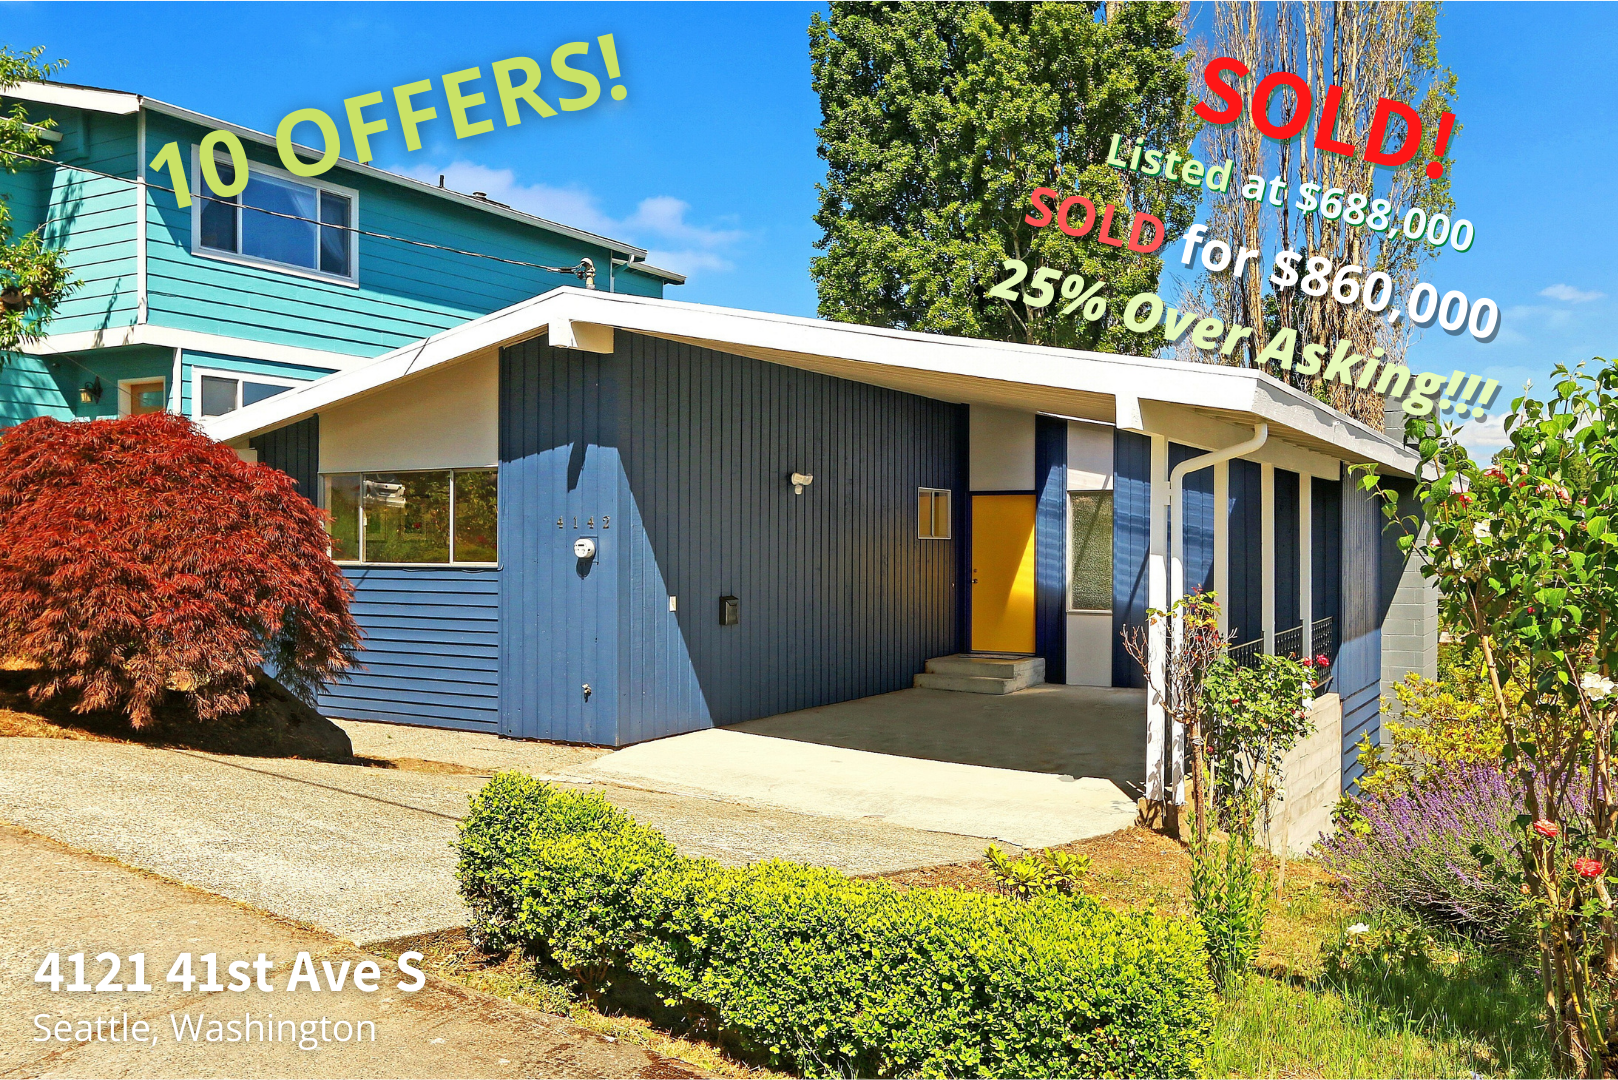 4142 41st Ave S - SOLD